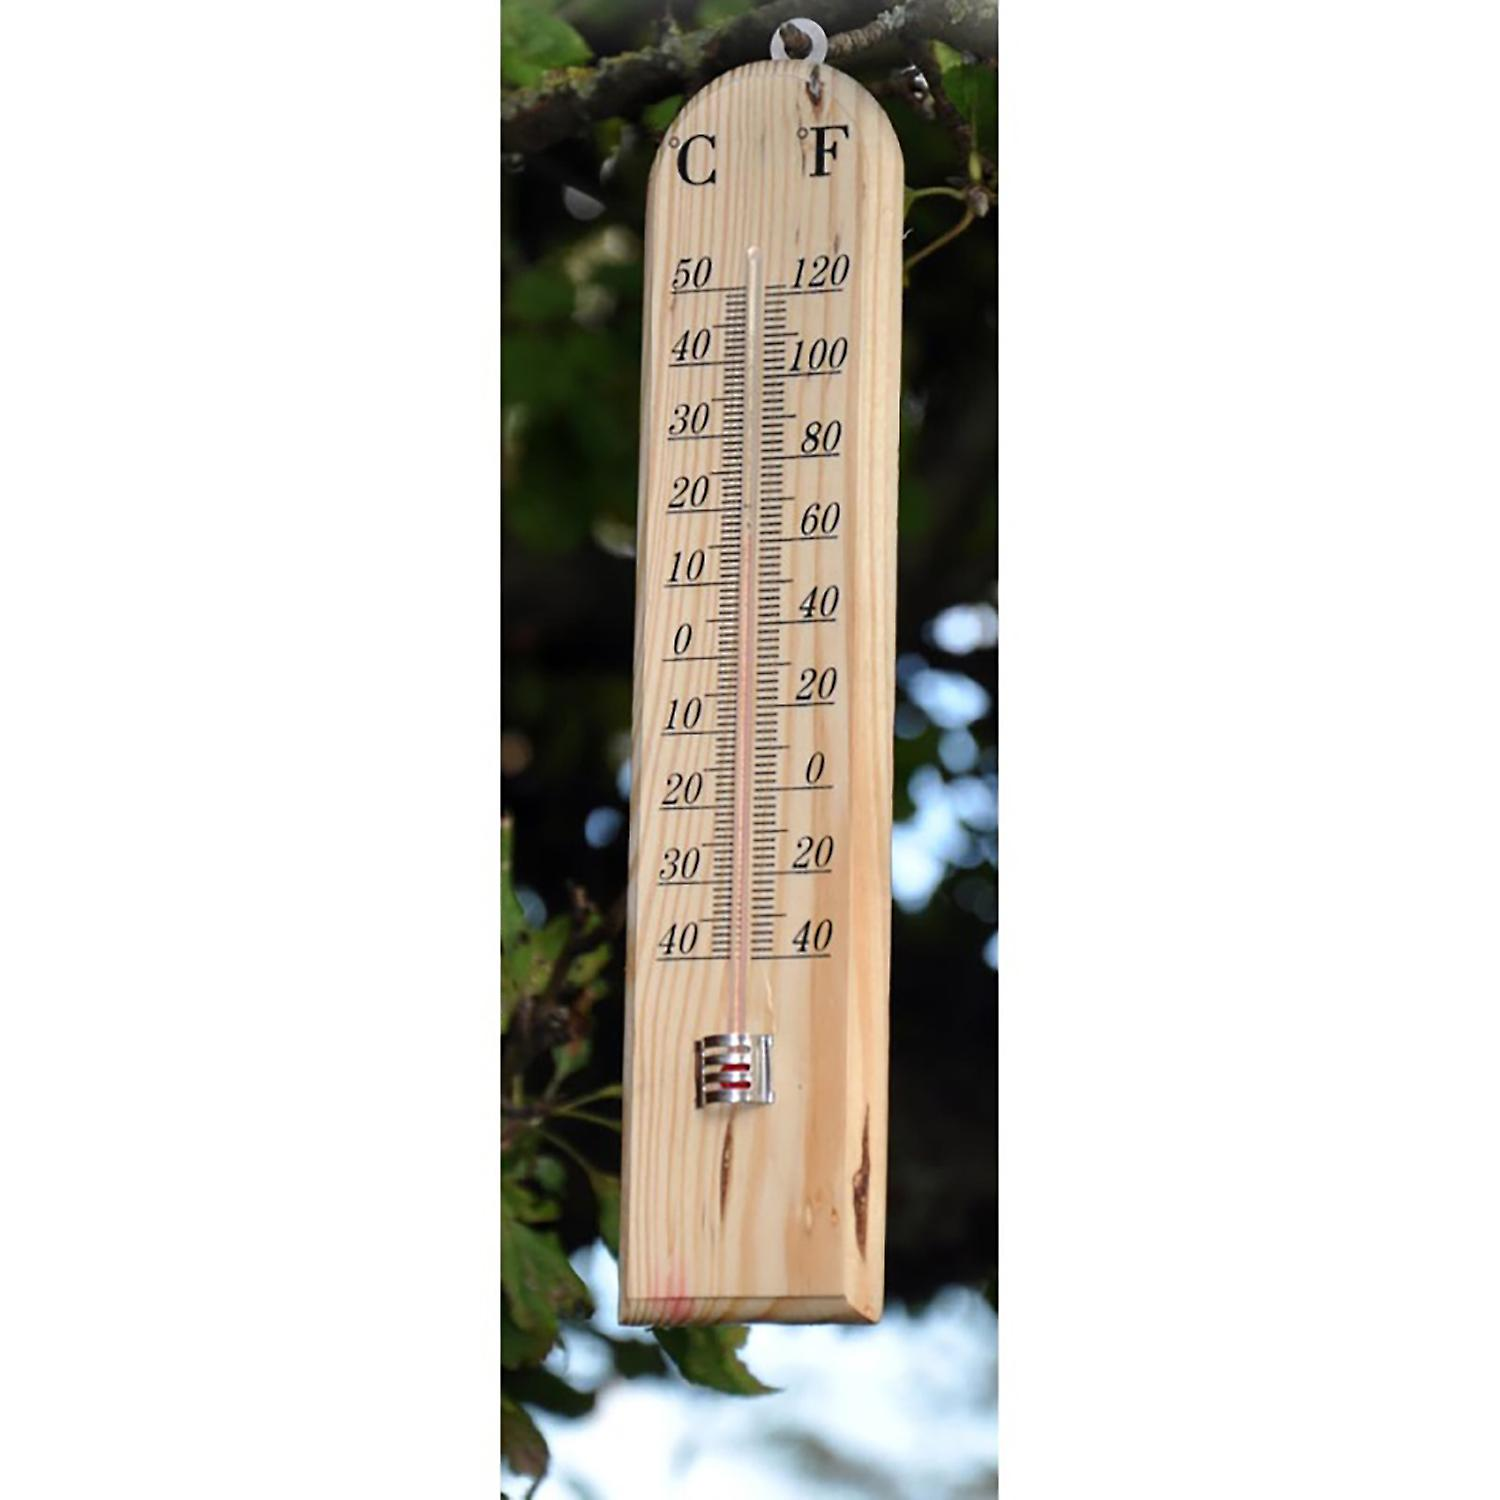 Shedmates GSTH02 Traditional Outdoor Wooden Wood Garden Thermometer with °C Celsius/ °F Fahrenheit display